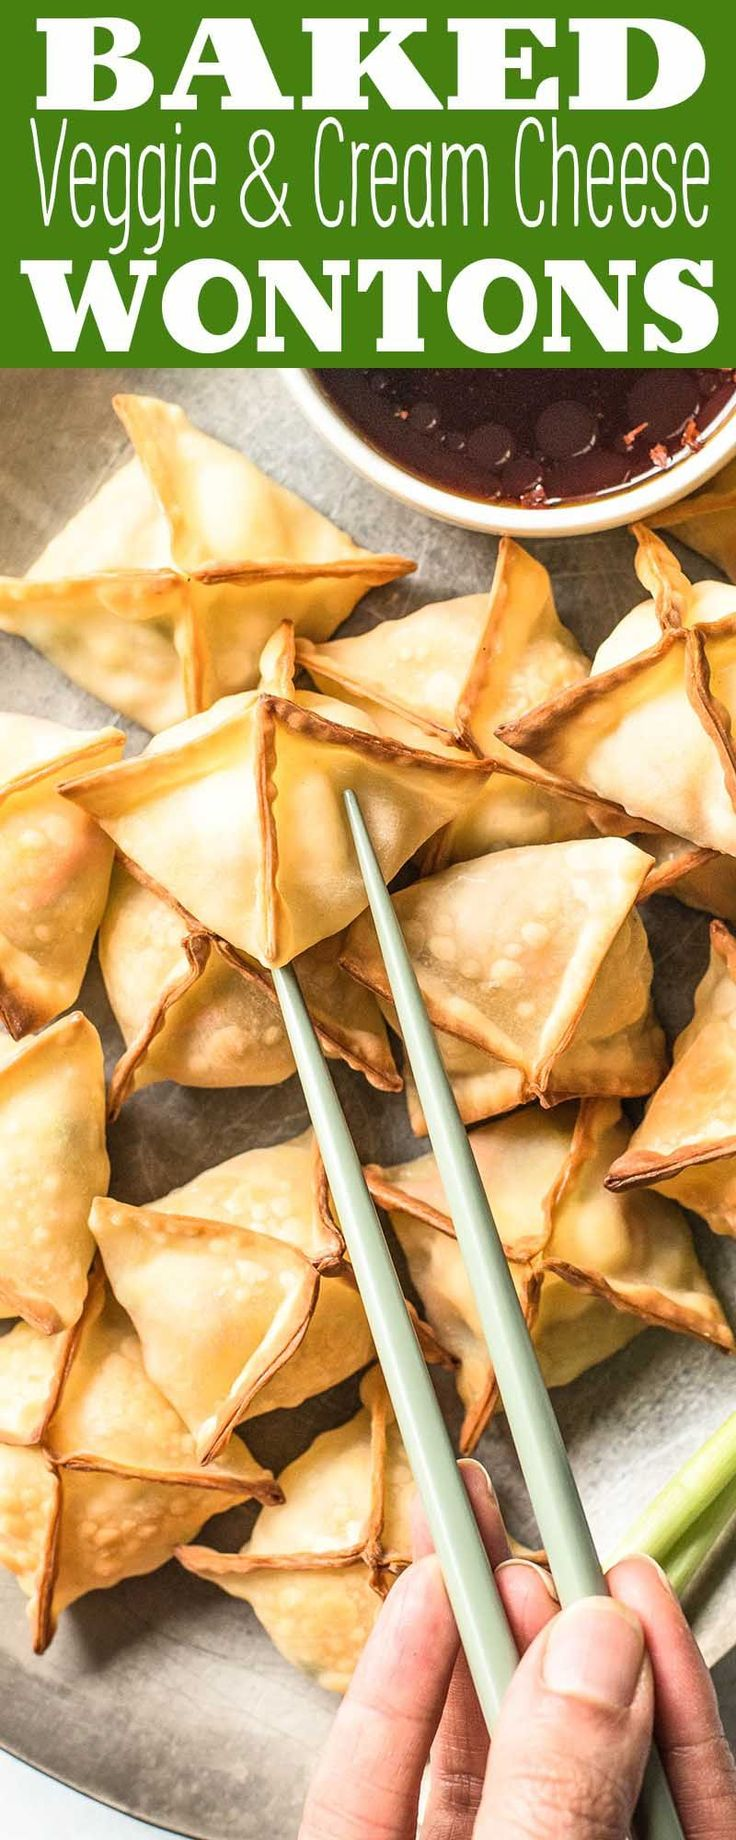 EASY vegetable and cream cheese baked wontons! Big crowd-pleaser and no need for deep-frying. Vegetarian make-ahead appetizer.